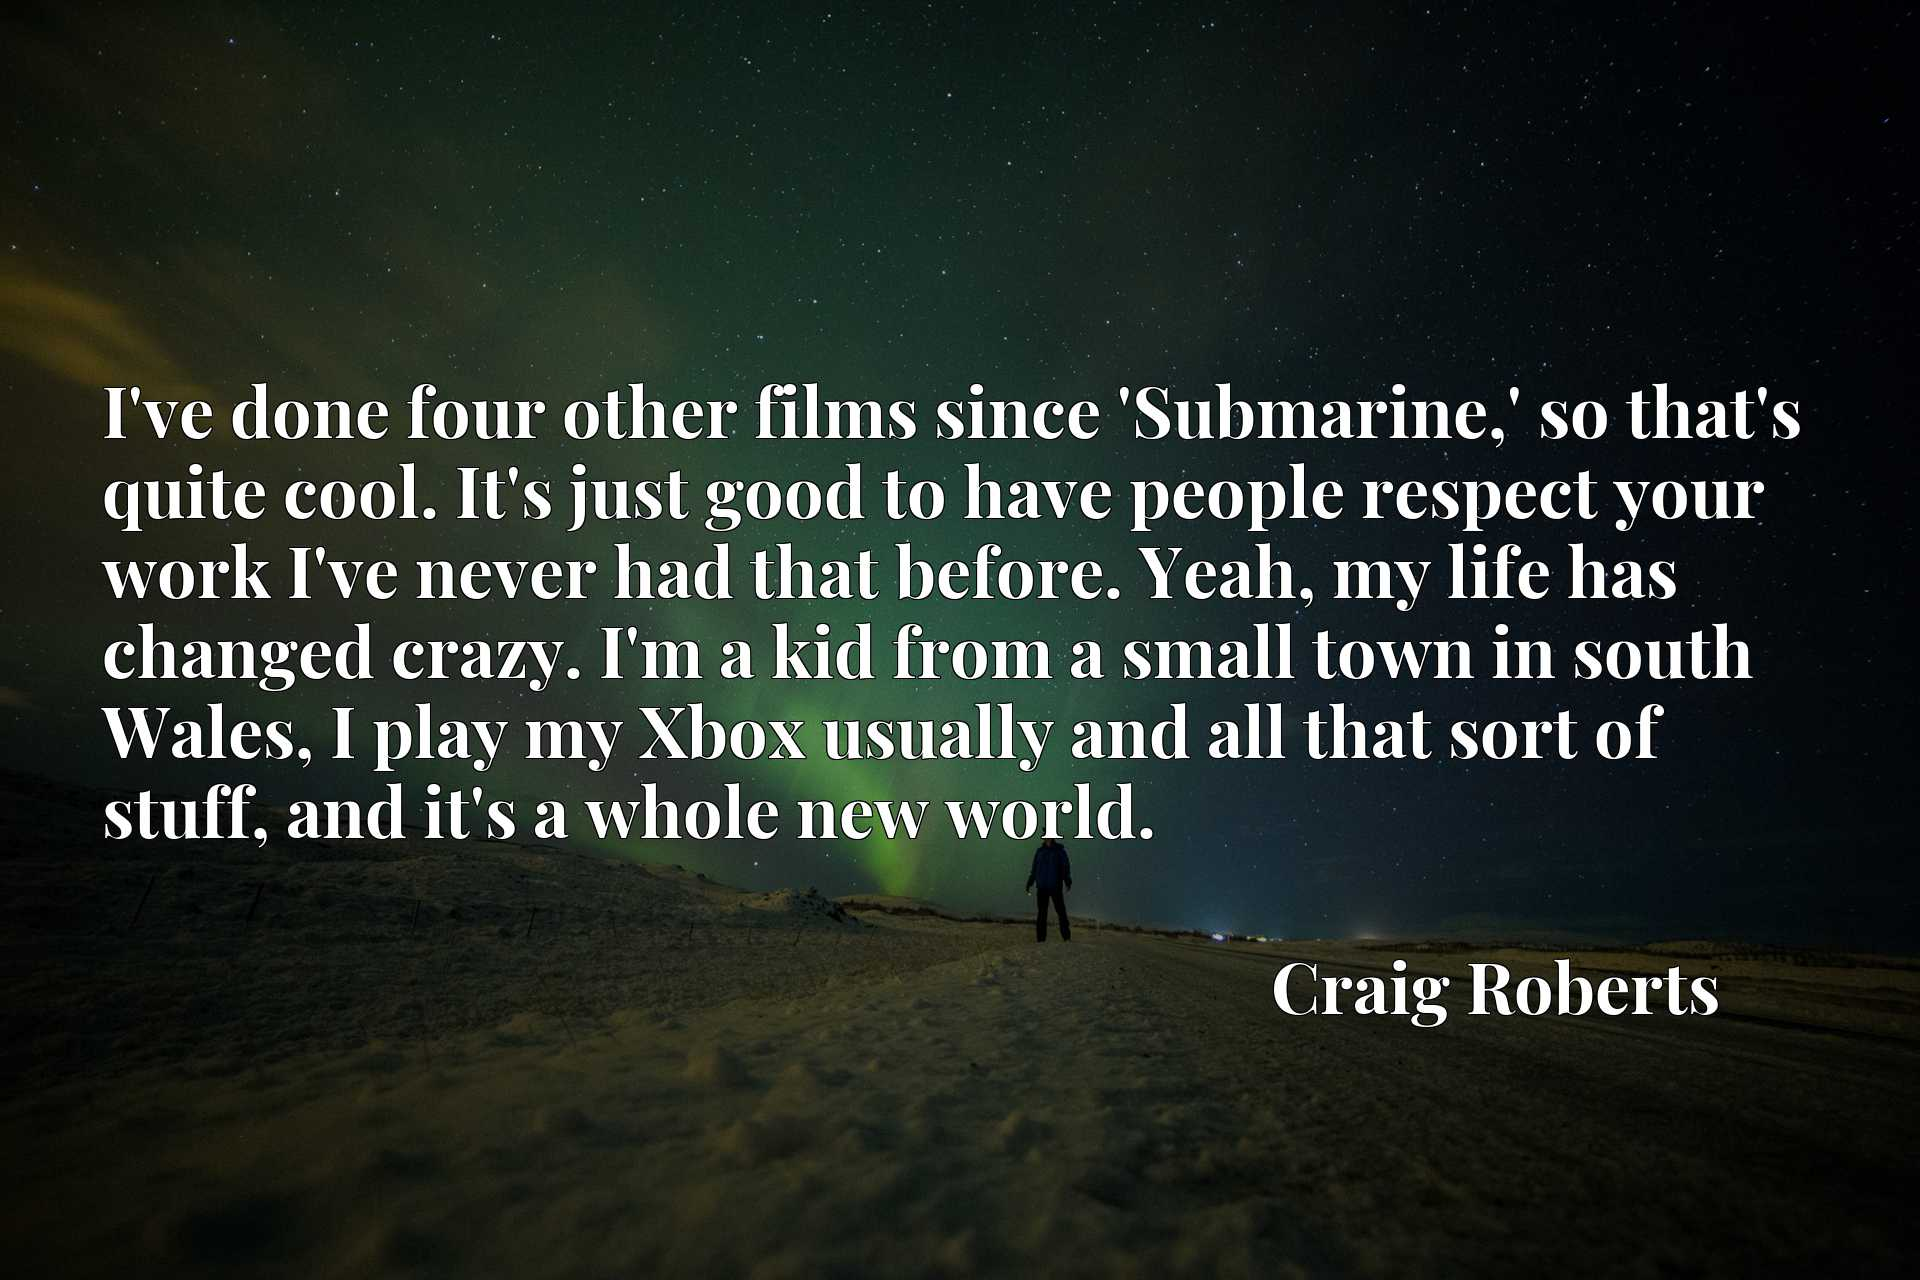 I've done four other films since 'Submarine,' so that's quite cool. It's just good to have people respect your work I've never had that before. Yeah, my life has changed crazy. I'm a kid from a small town in south Wales, I play my Xbox usually and all that sort of stuff, and it's a whole new world.